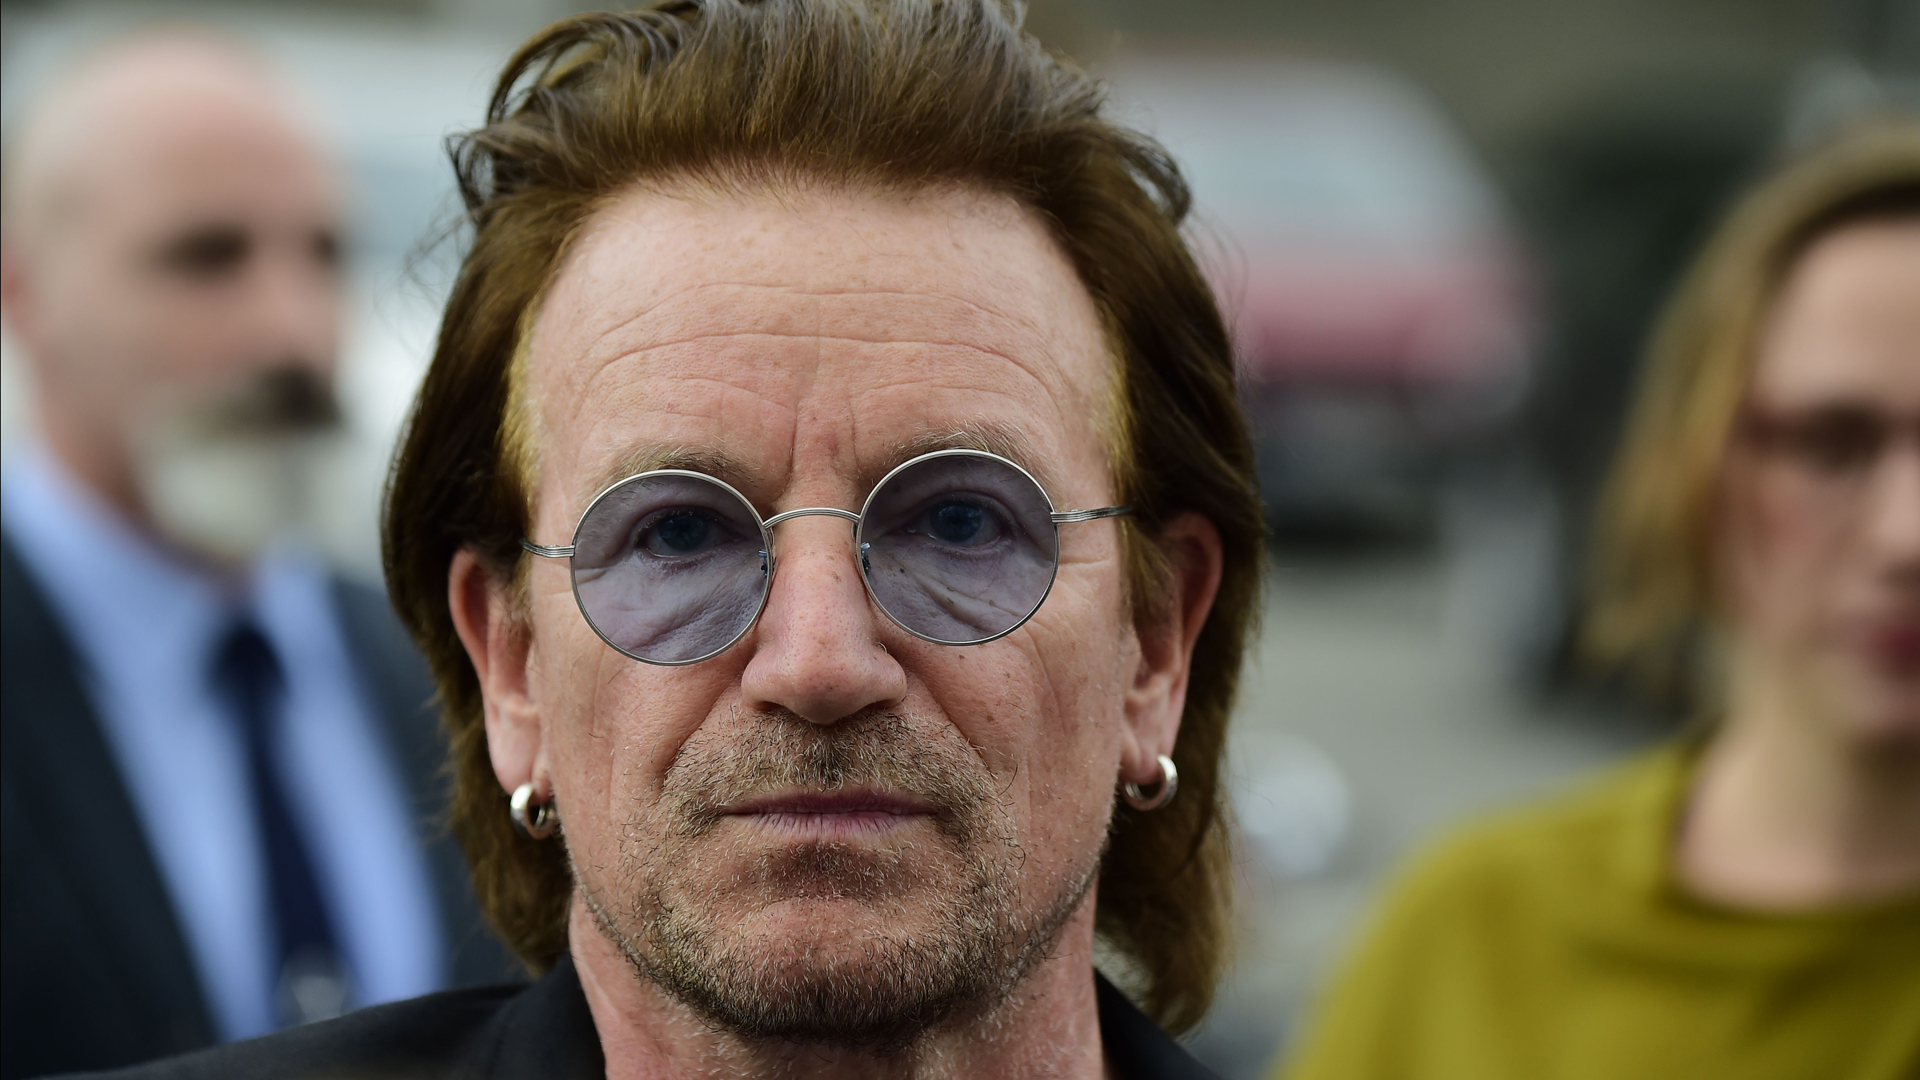 U2 lead singer Bono is pictured after a meeting with the German Chancellor in Berlin on August 28, 2017. (Credit: TOBIAS SCHWARZ/AFP/Getty Images)